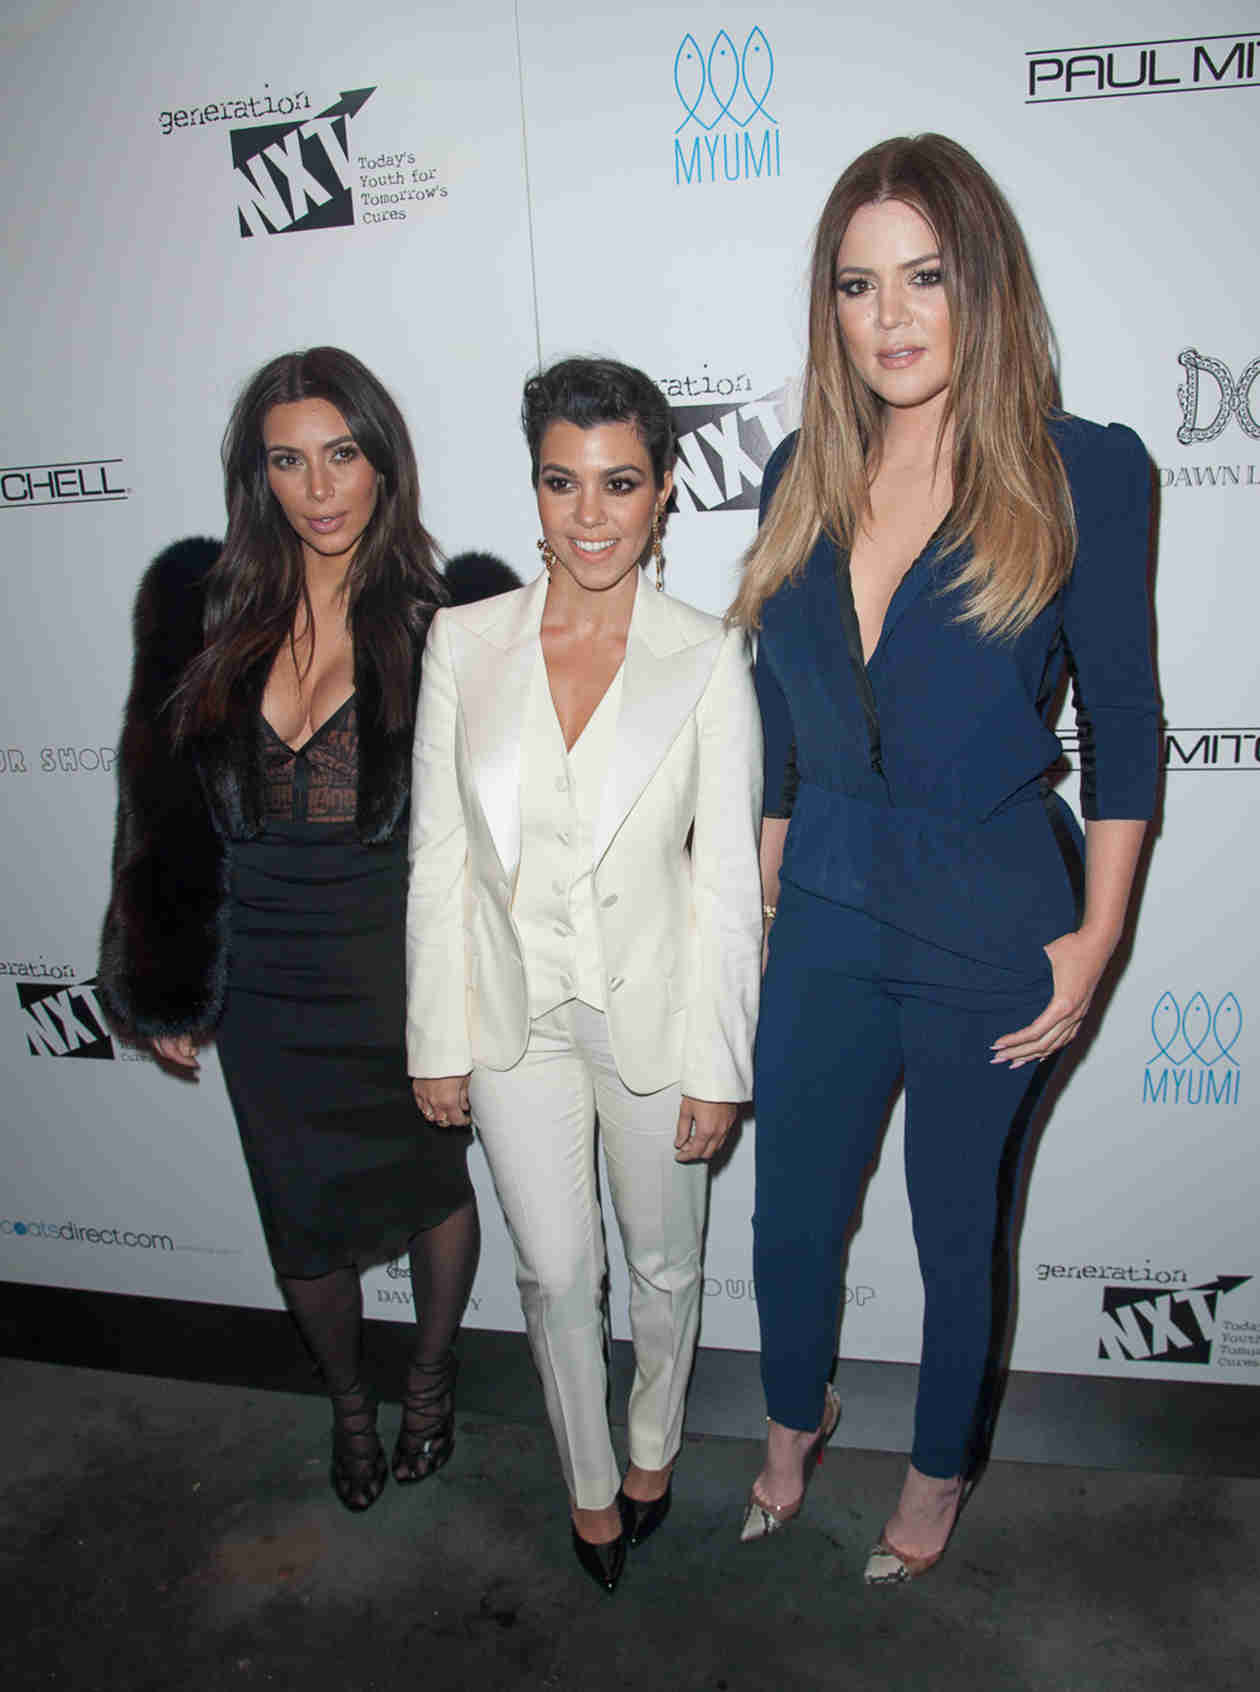 Kourtney and Khloe Kardashian Make Outrageous Demands in Hamptons — Report (VIDEO)